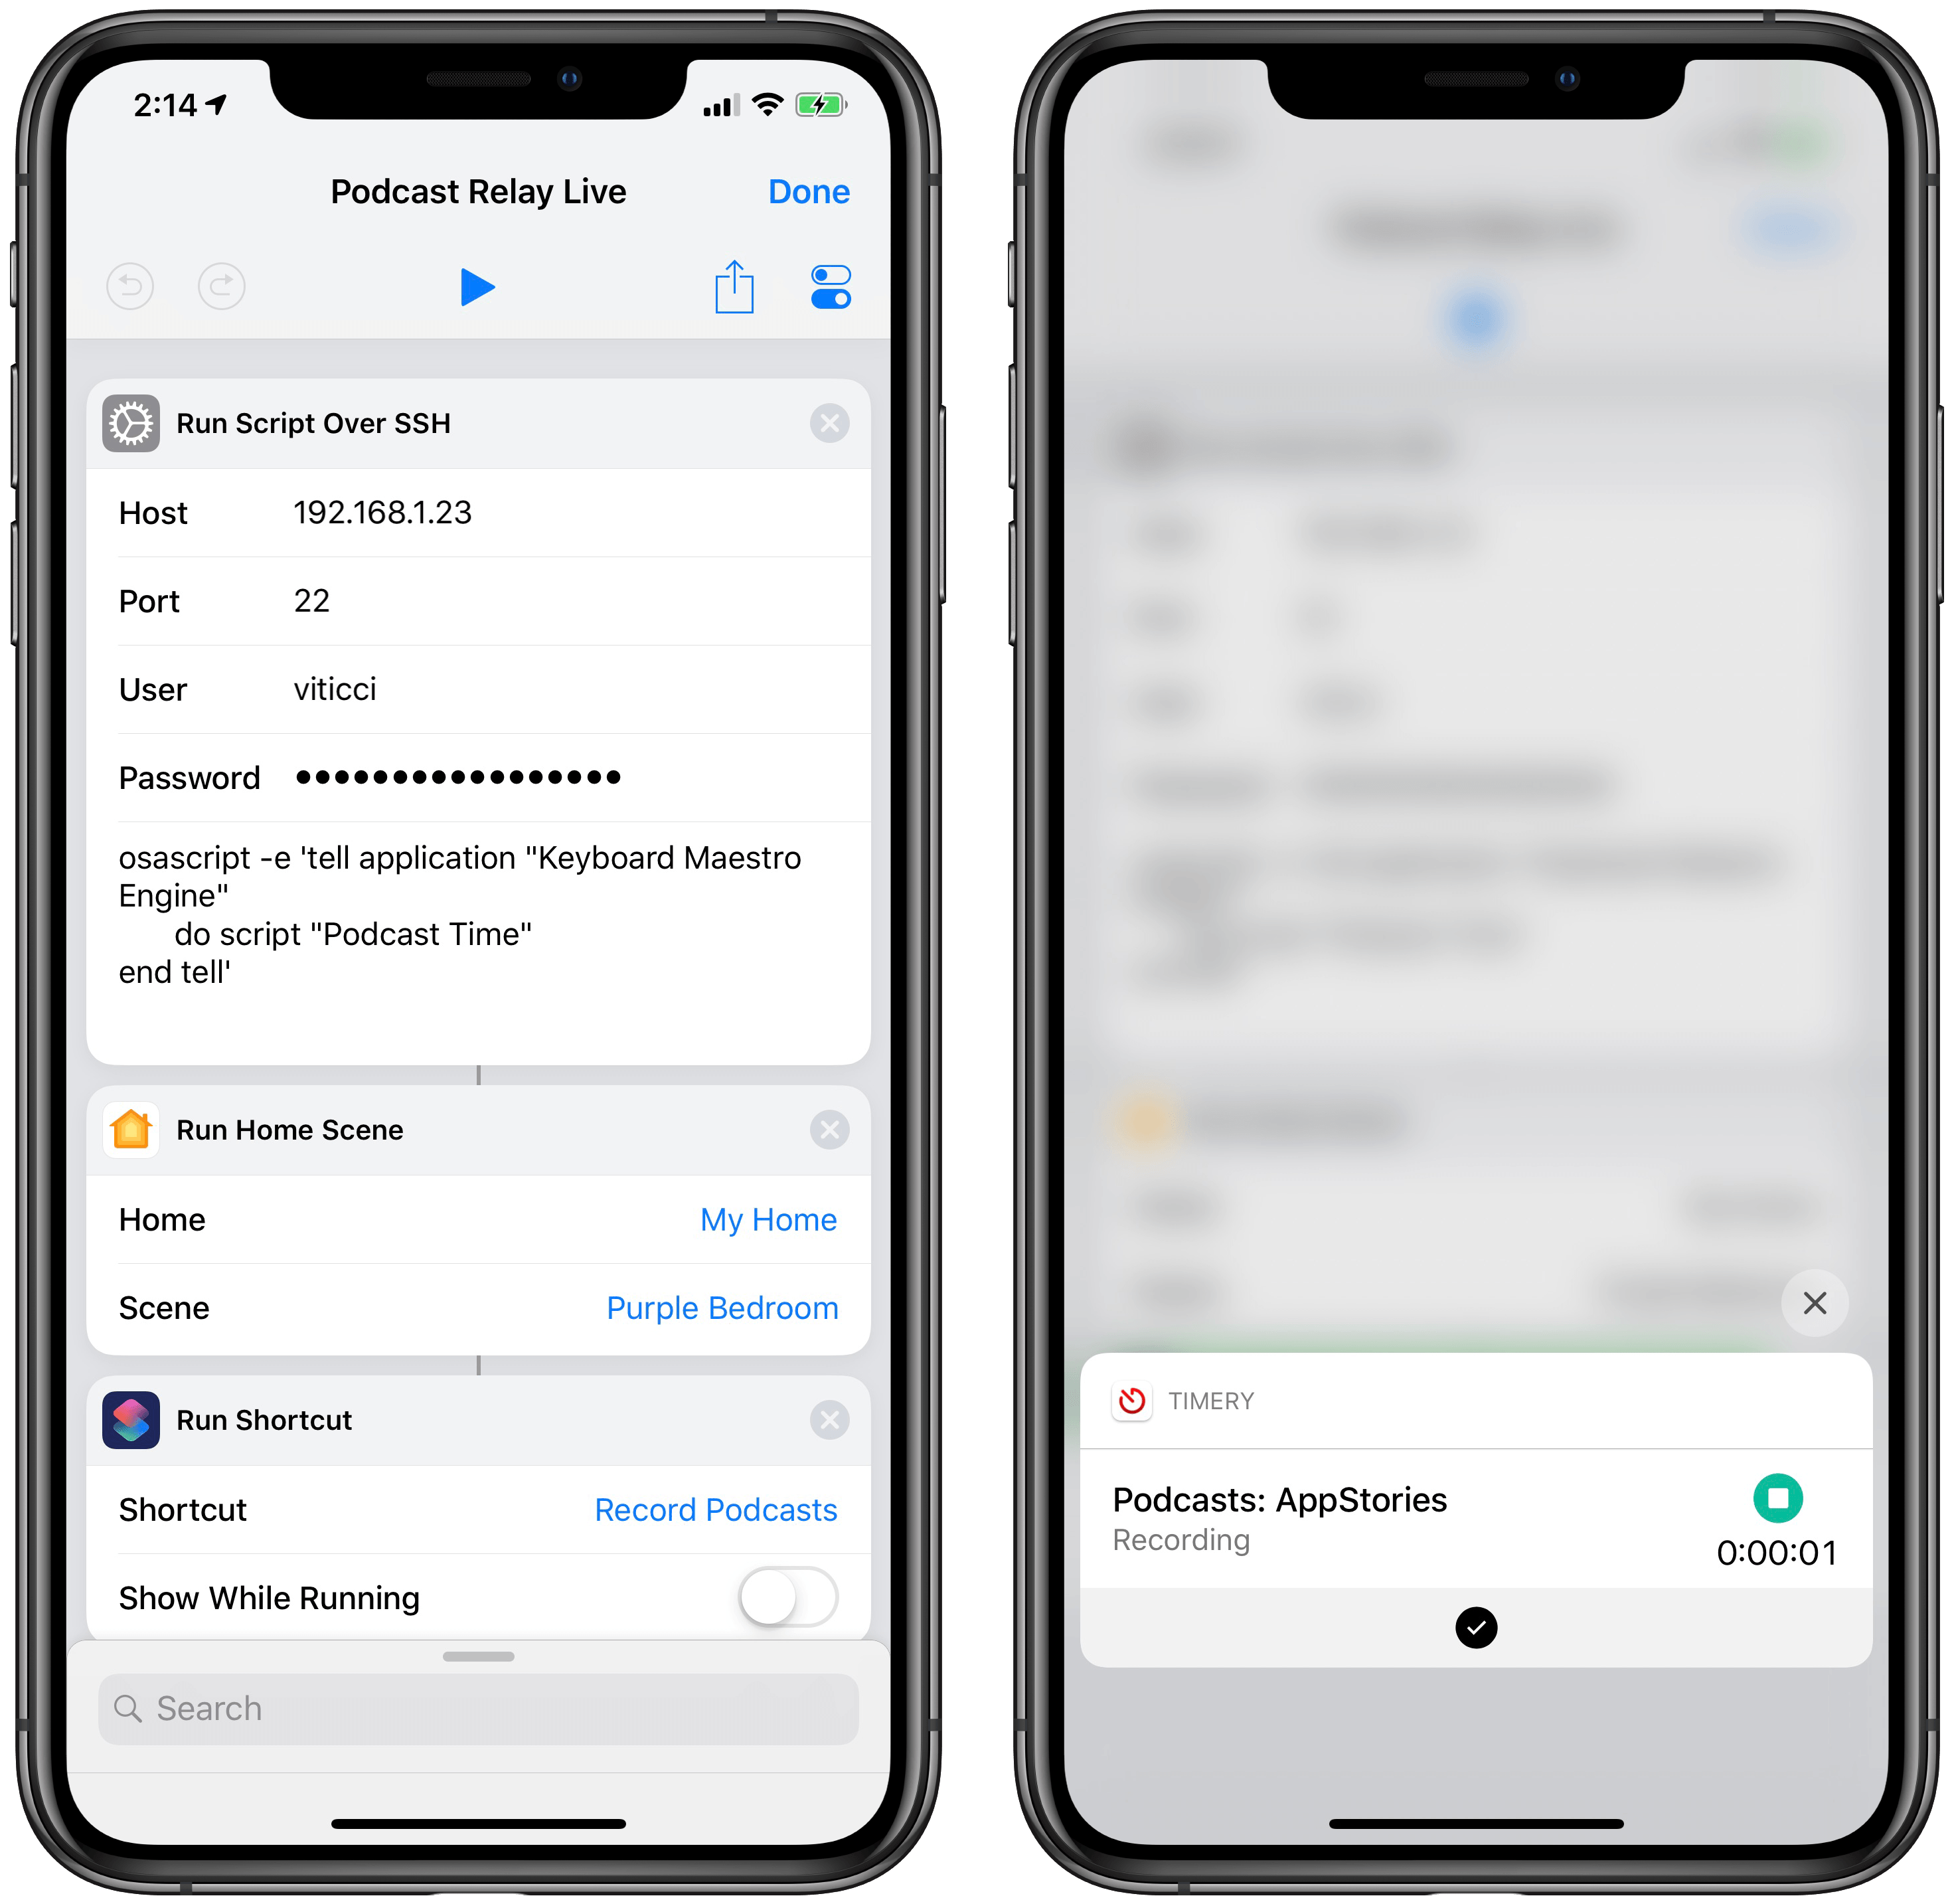 When I run the shortcut on my iPhone, nothing else is shown besides the Toggl shortcut started at the end.